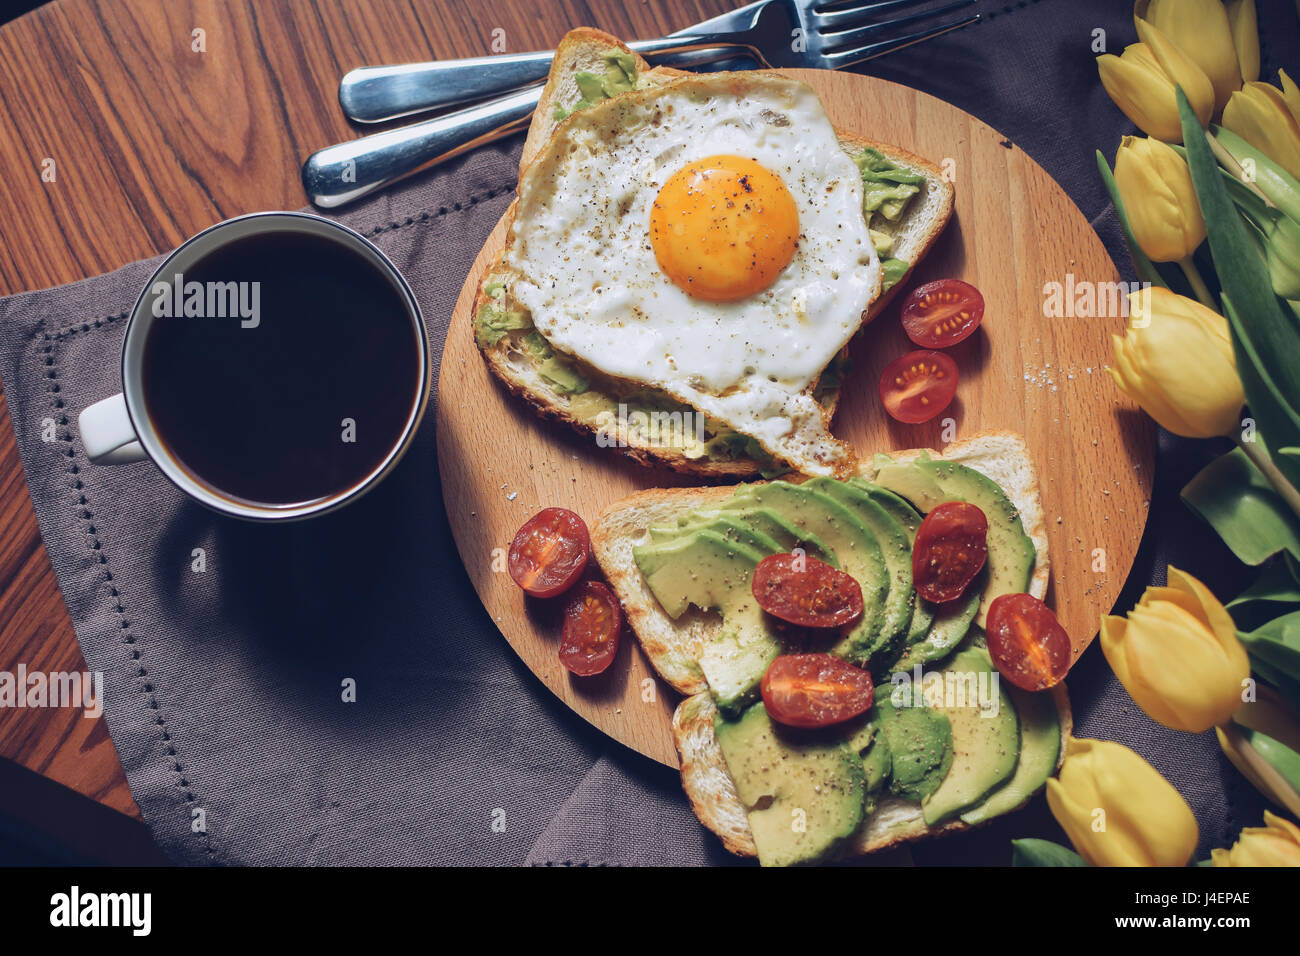 Breakfast variations. Avocado on a toasted bread. - Stock Image